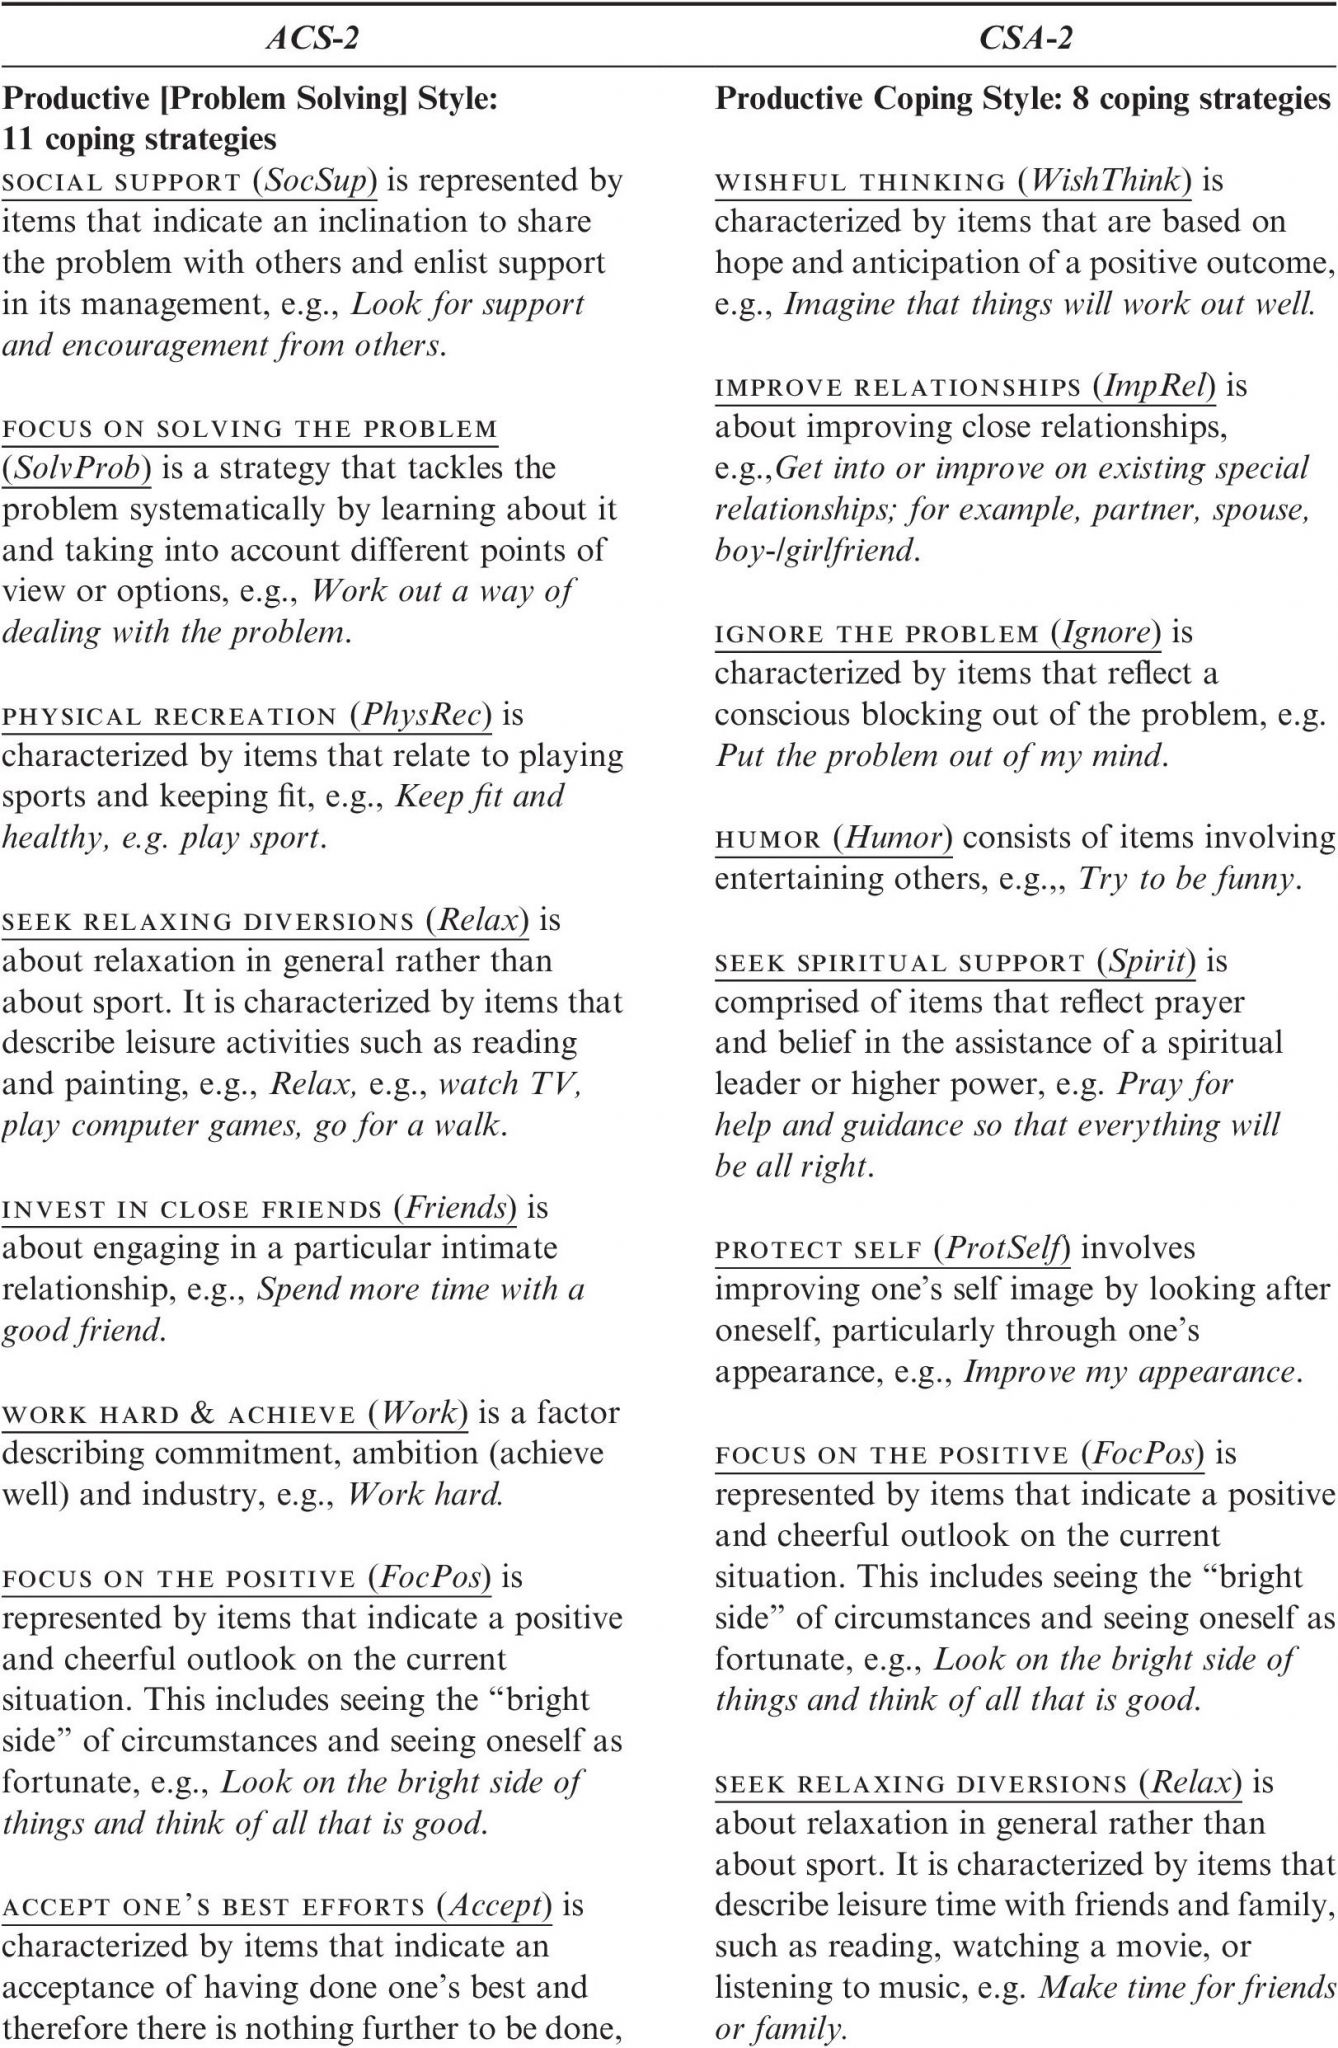 31 Ecological Relationships Worksheet Answers